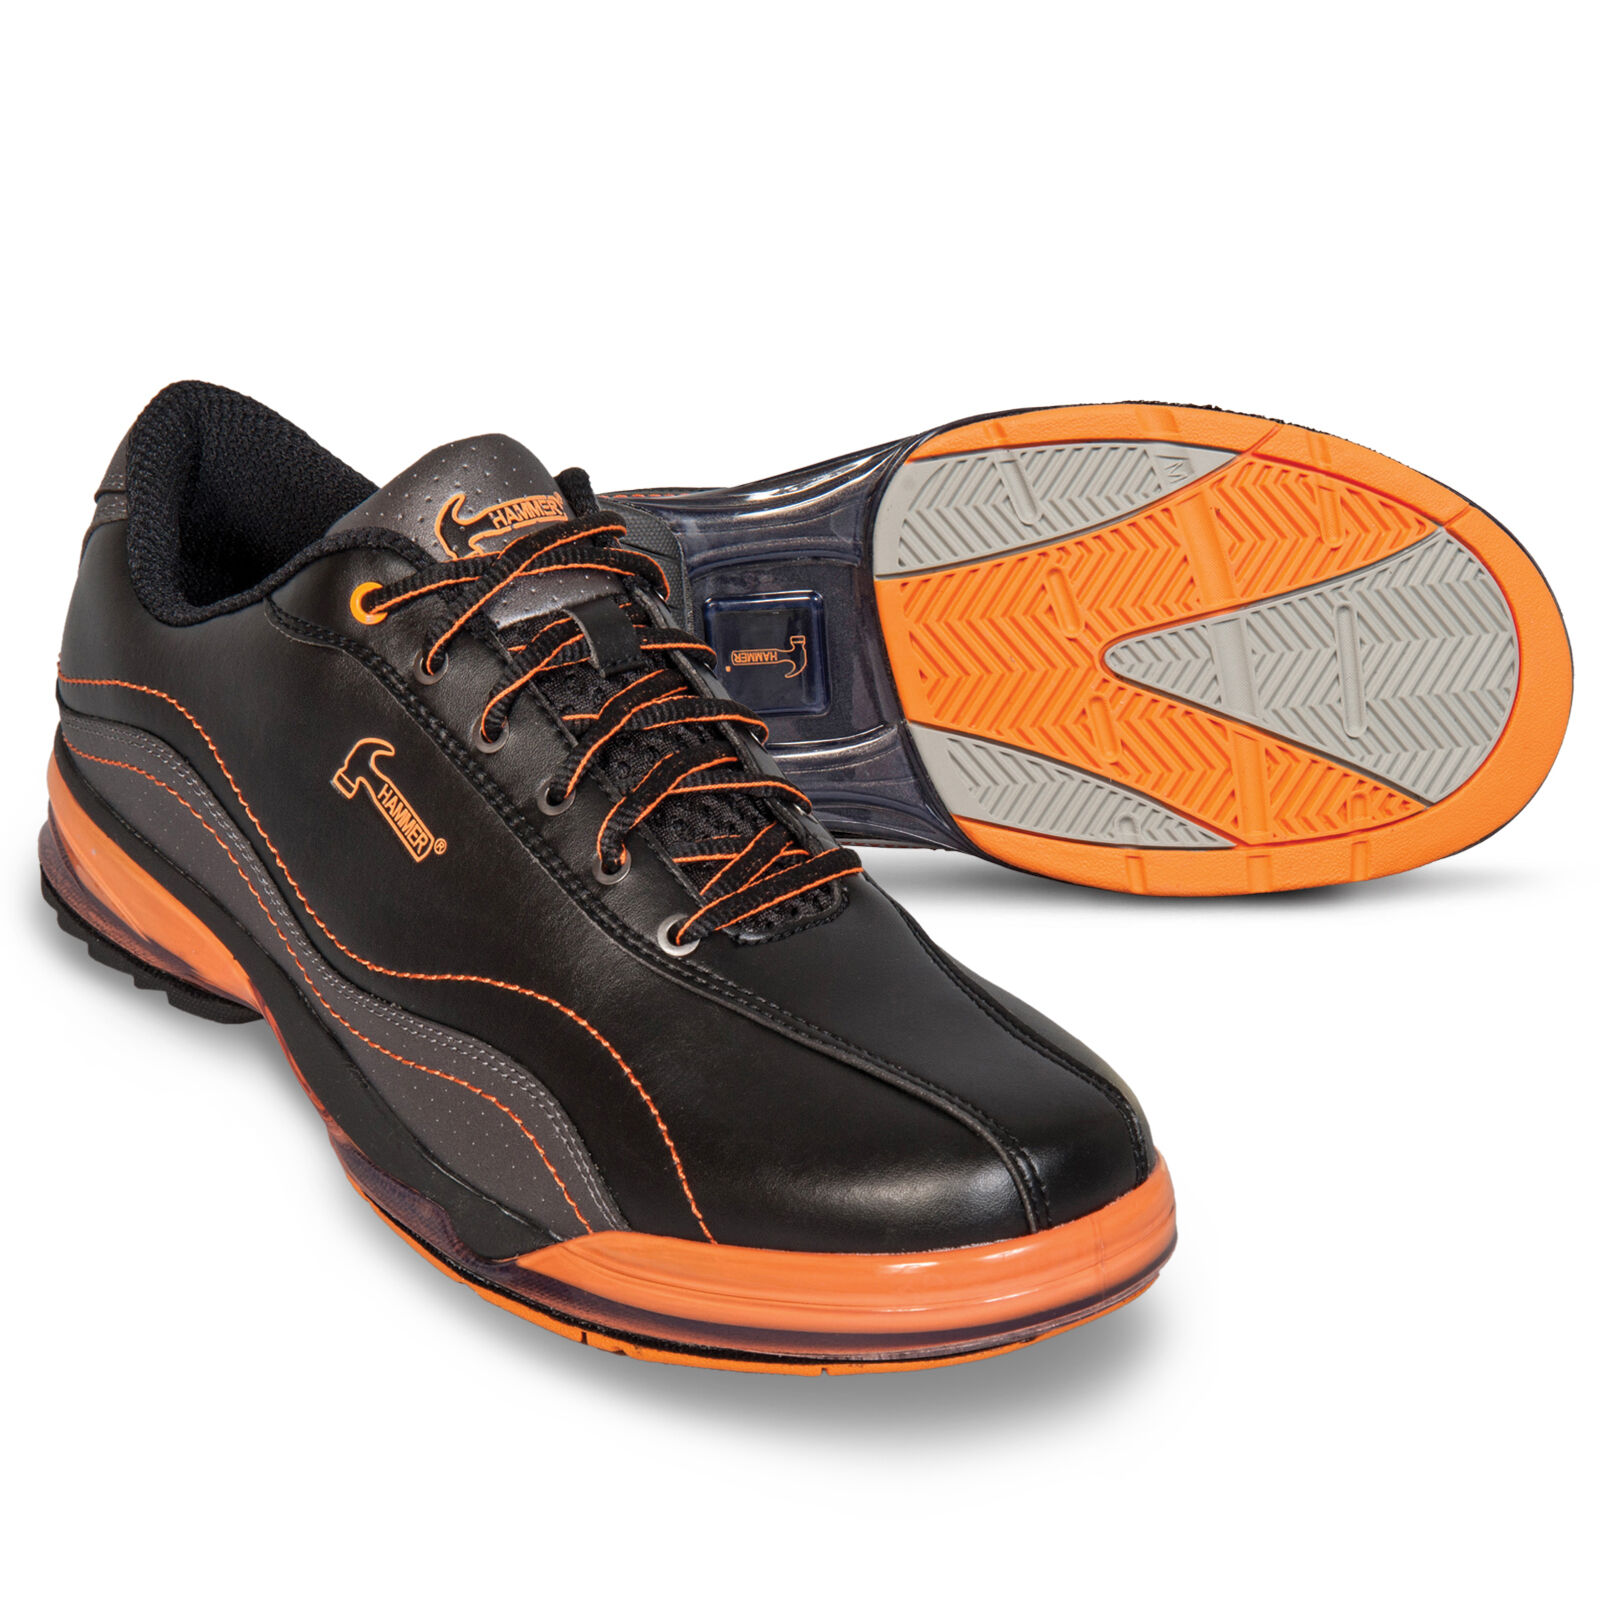 Hammer Force High Performance Bowling shoes Left Hand